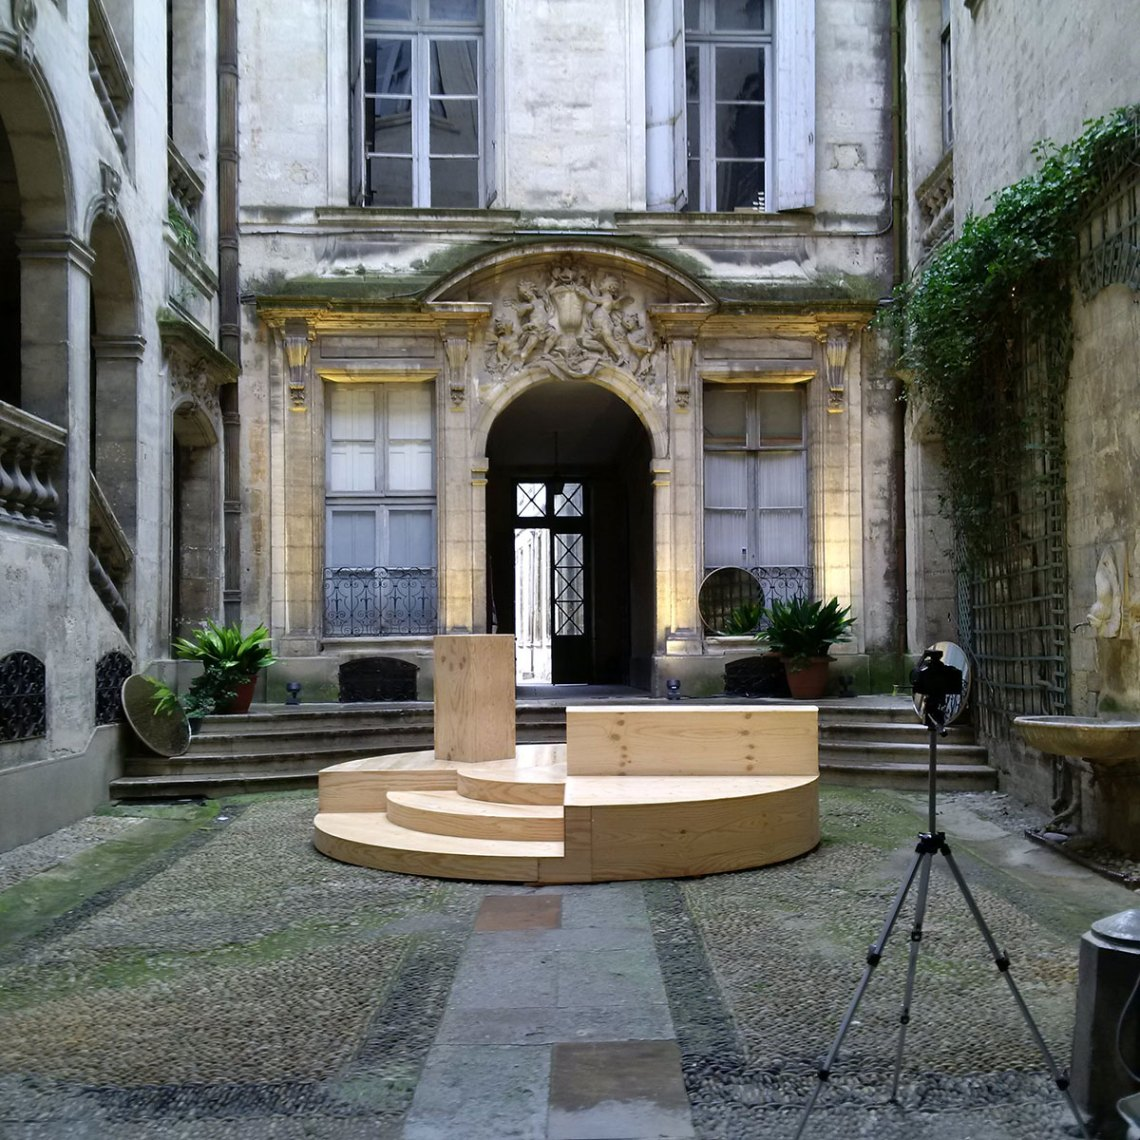 Festival-Architectures-Vives-installation-pseudonyme-18